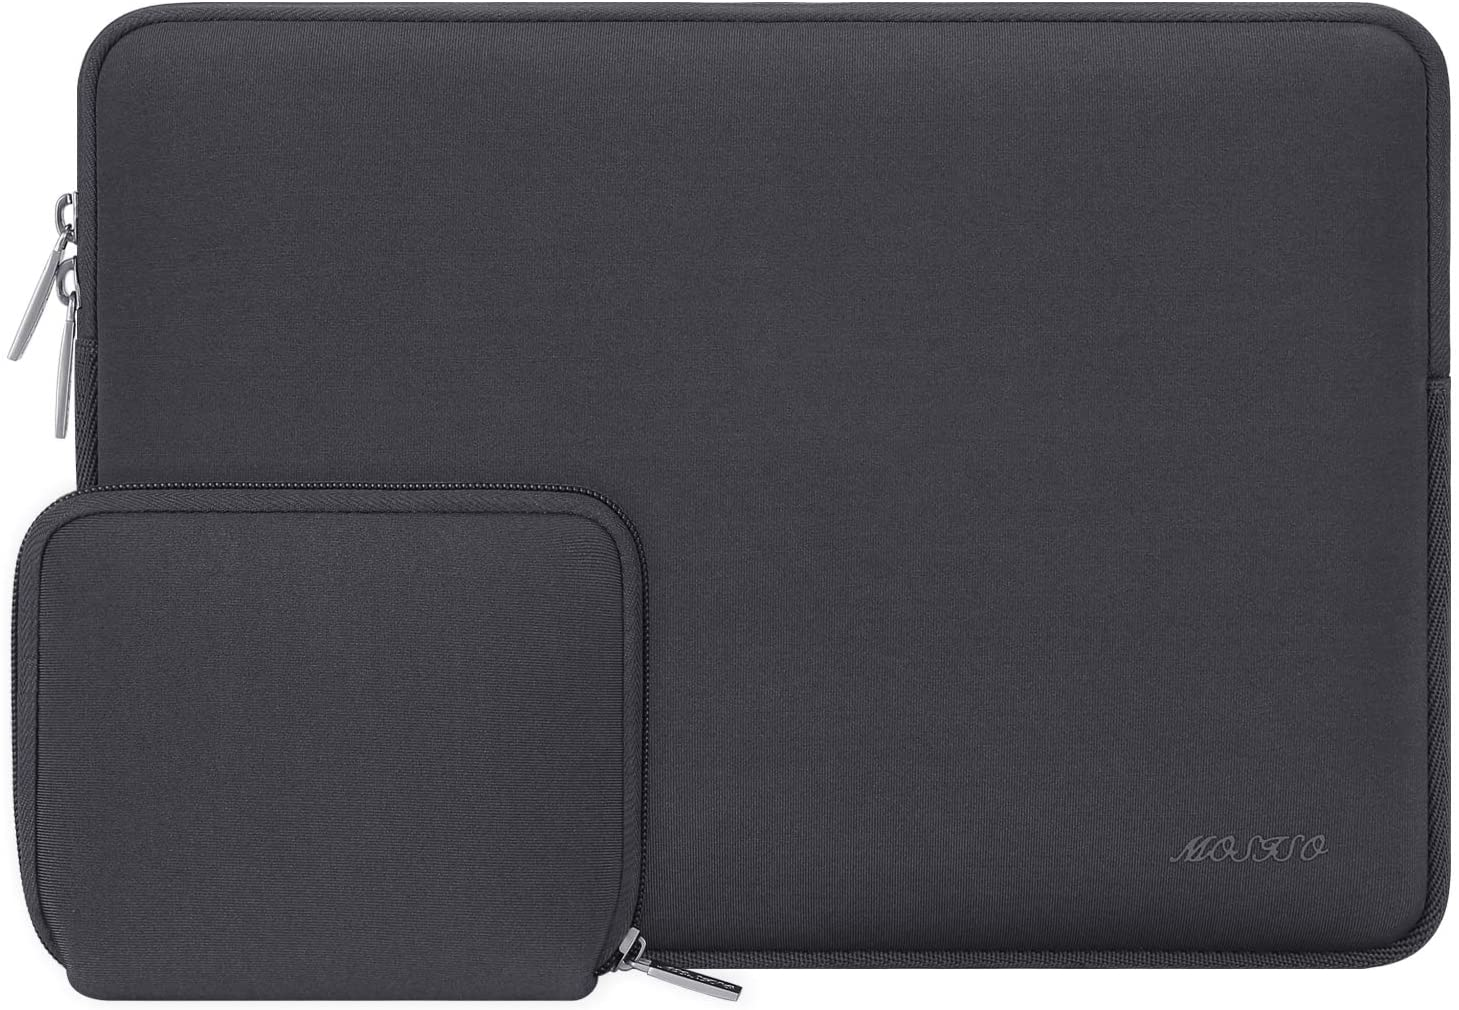 MOSISO Laptop Sleeve Compatible with 13-13.3 inch MacBook Pro, MacBook Air, Notebook Computer, Water Repellent Neoprene Bag with Small Case, Space Gray